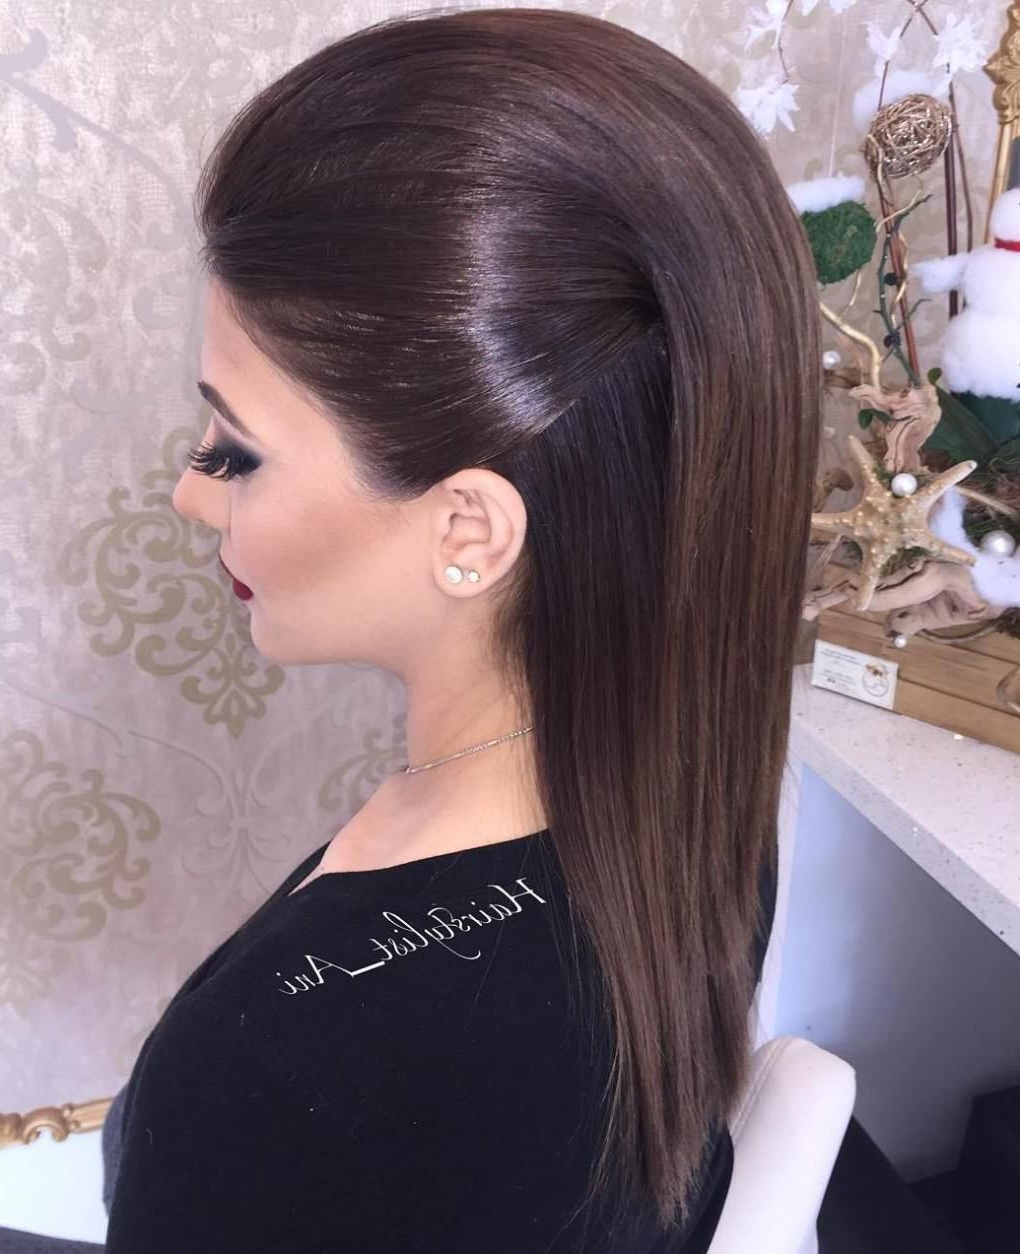 Fashionable Medium Hairstyles For Heart Shaped Faces Intended For Best Short Hairstyle For Heart Shaped Face (View 4 of 20)